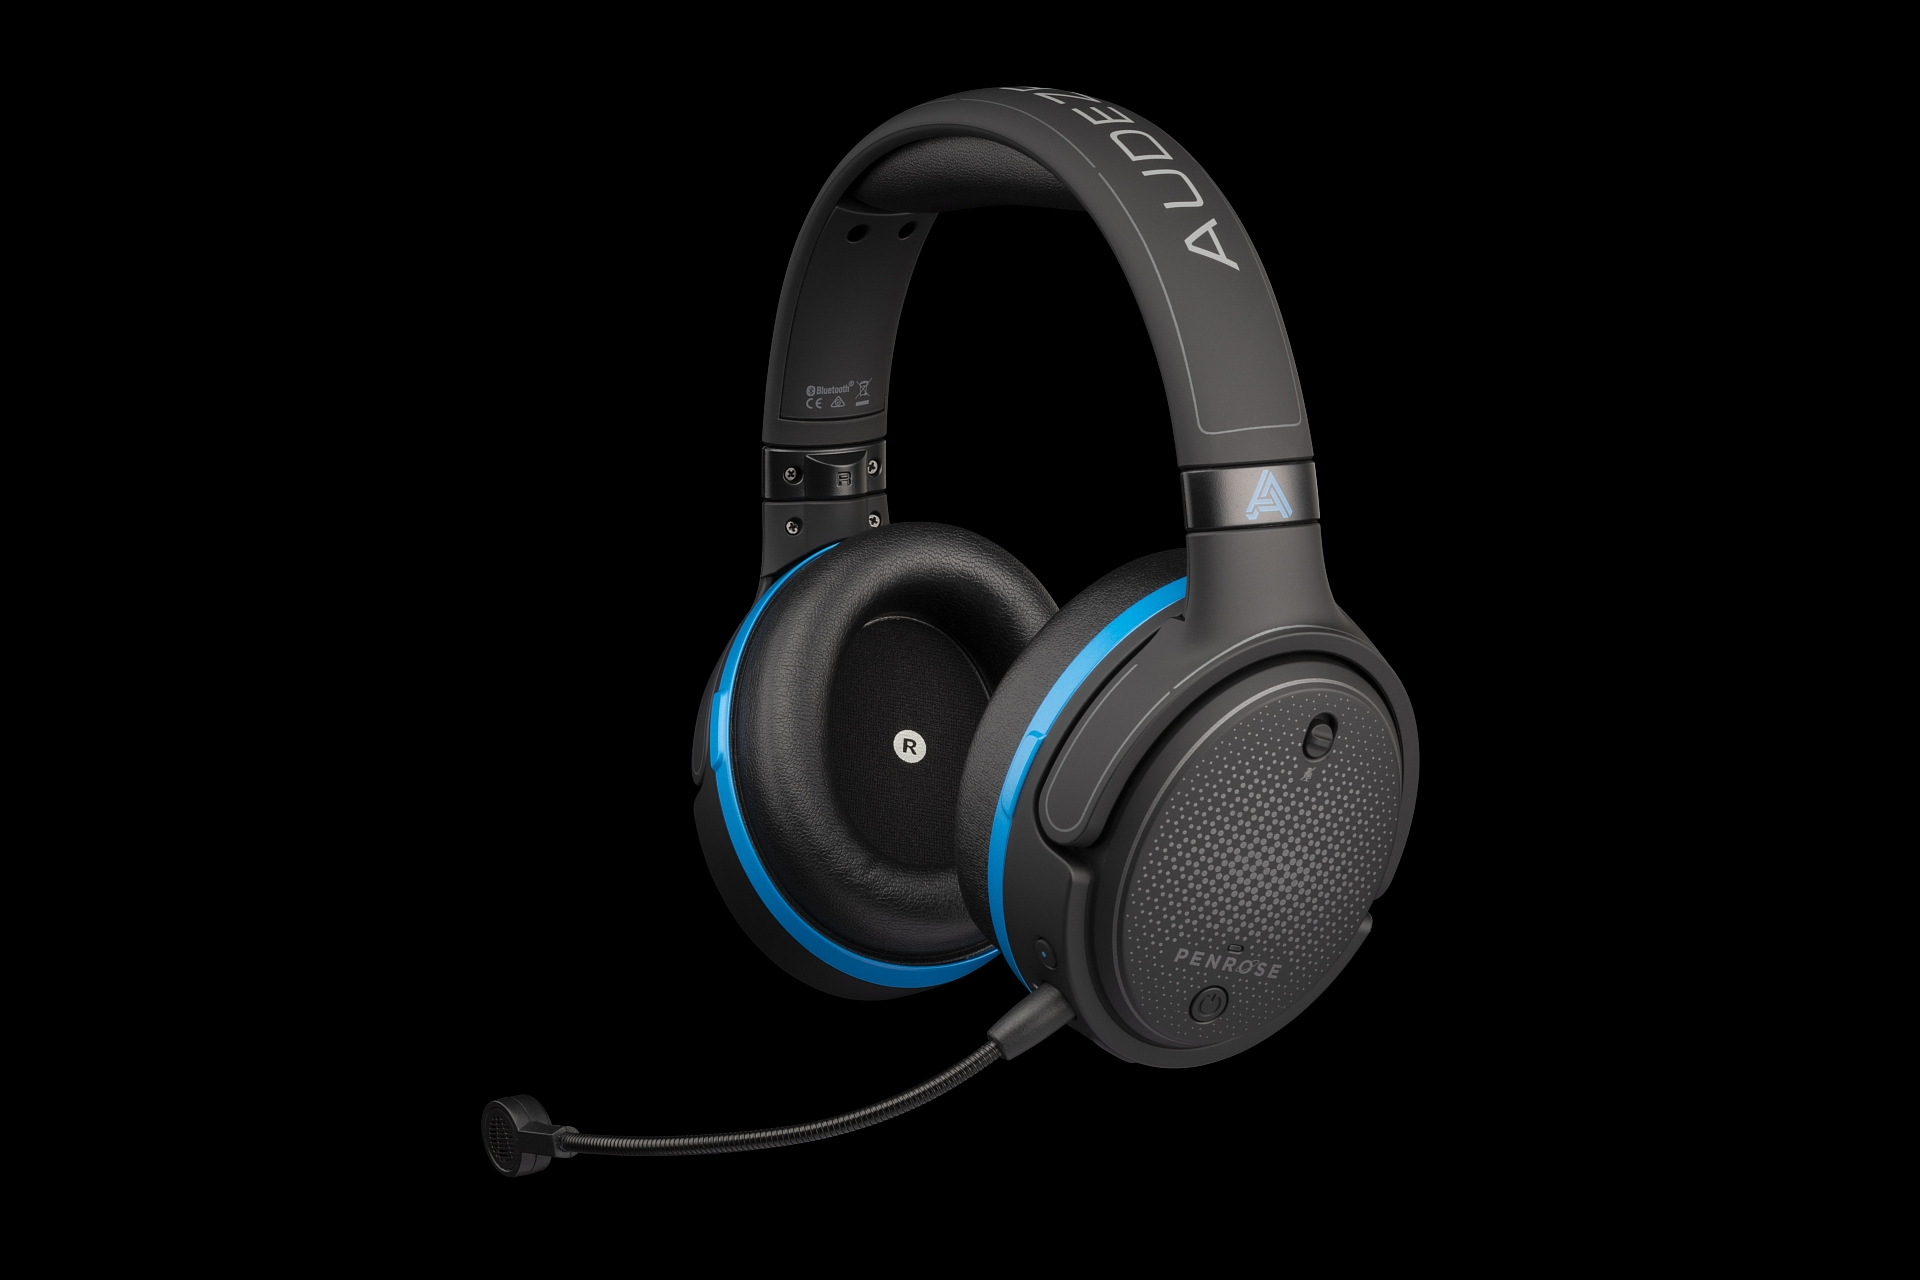 Penrose Is A New Wireless Gaming Headset From Audeze Designed For Next Gen Consoles And Pc